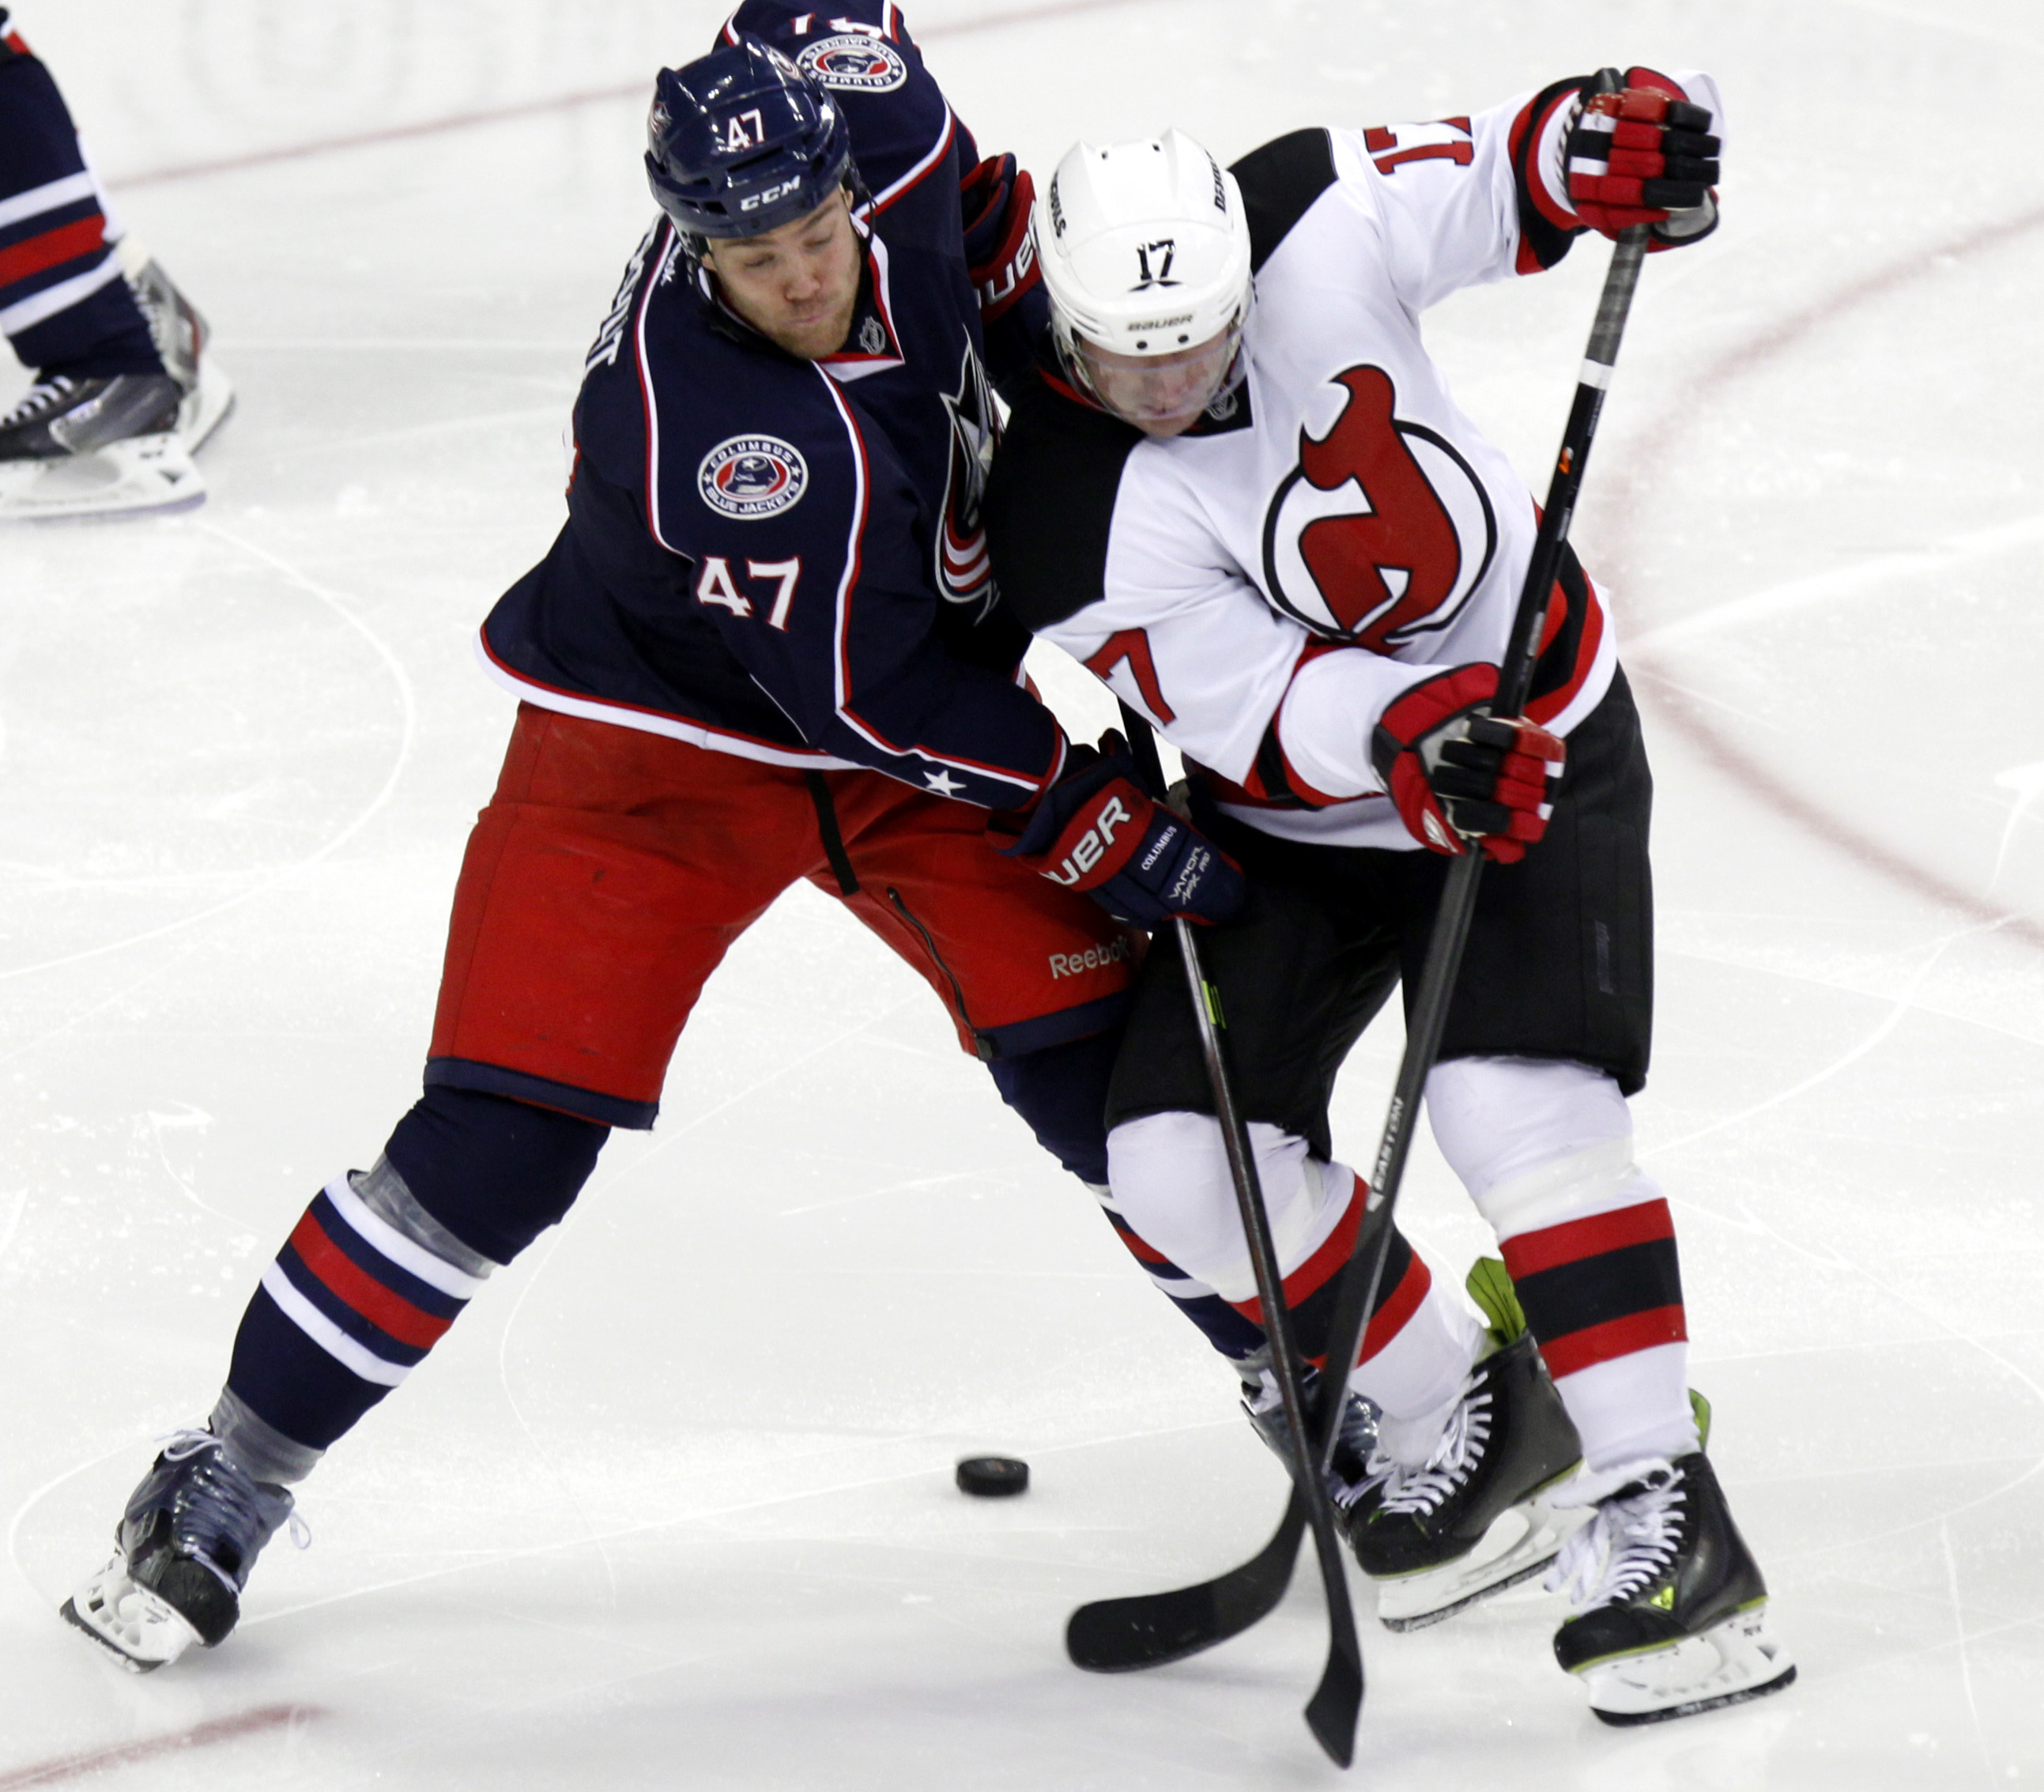 New Jersey Devils' Michael Ryder, right, works for the puck against Columbus Blue Jackets' Dalton Prout in the third period of an NHL hockey game in Columbus, Ohio, Tuesday, Oct. 22, 2013. The Blue Jackets won 4-1